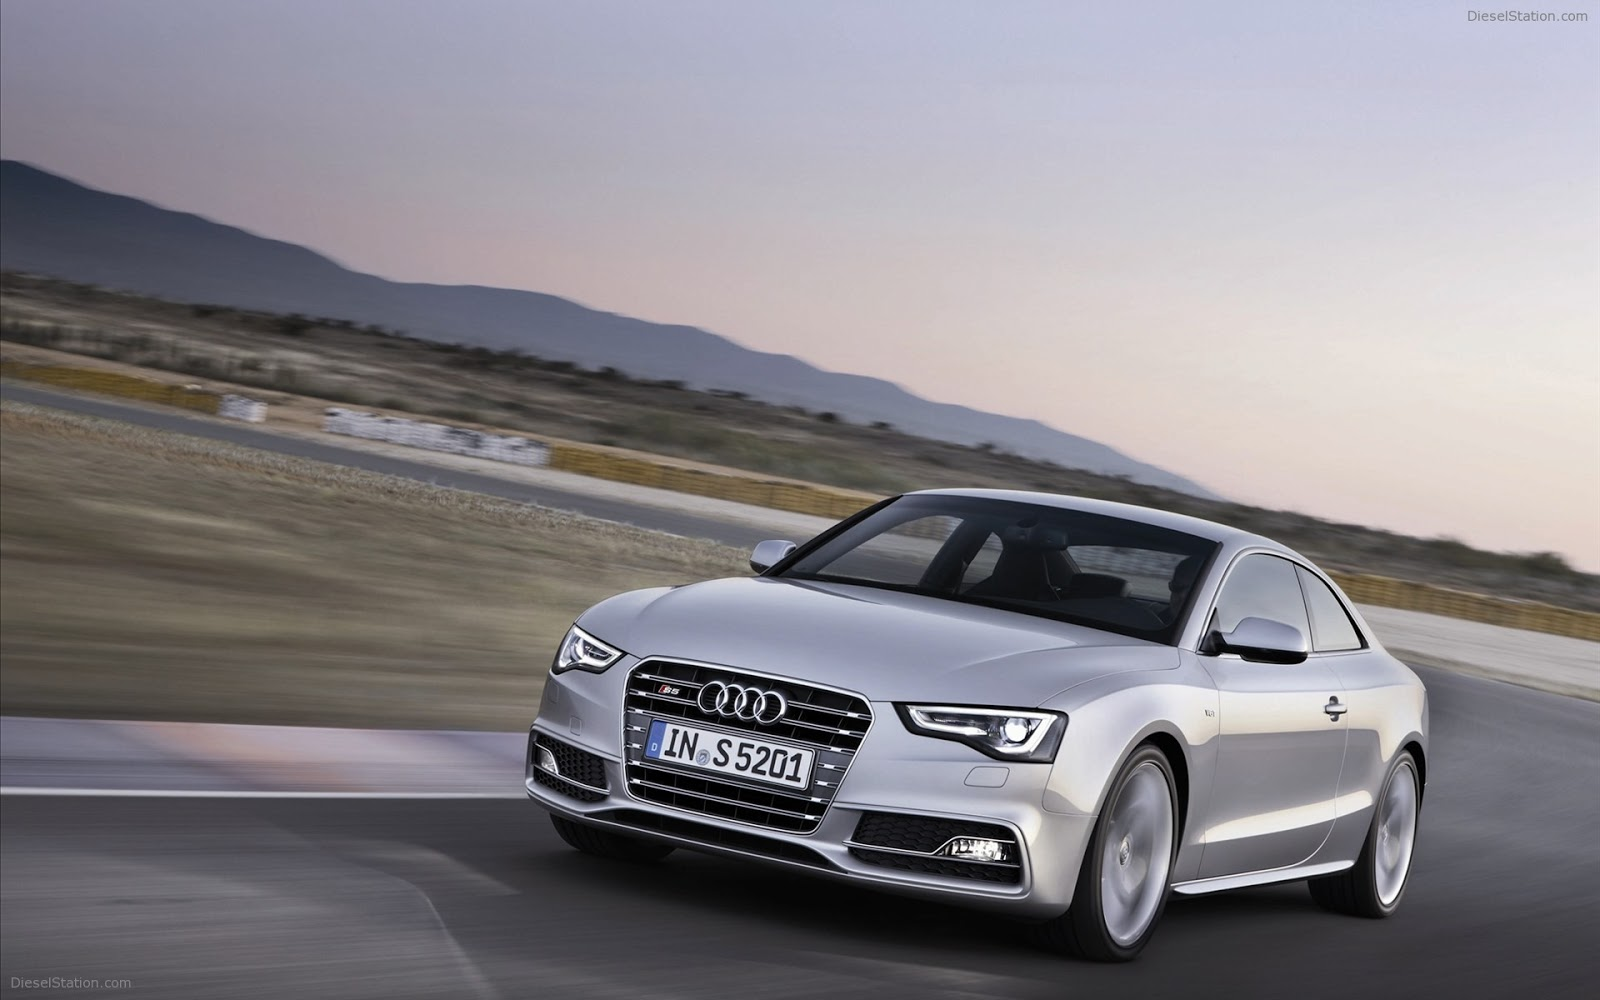 Year2008 Top 27 Most Beautiful And Dashing AUDI CAR Wallpapers In HD